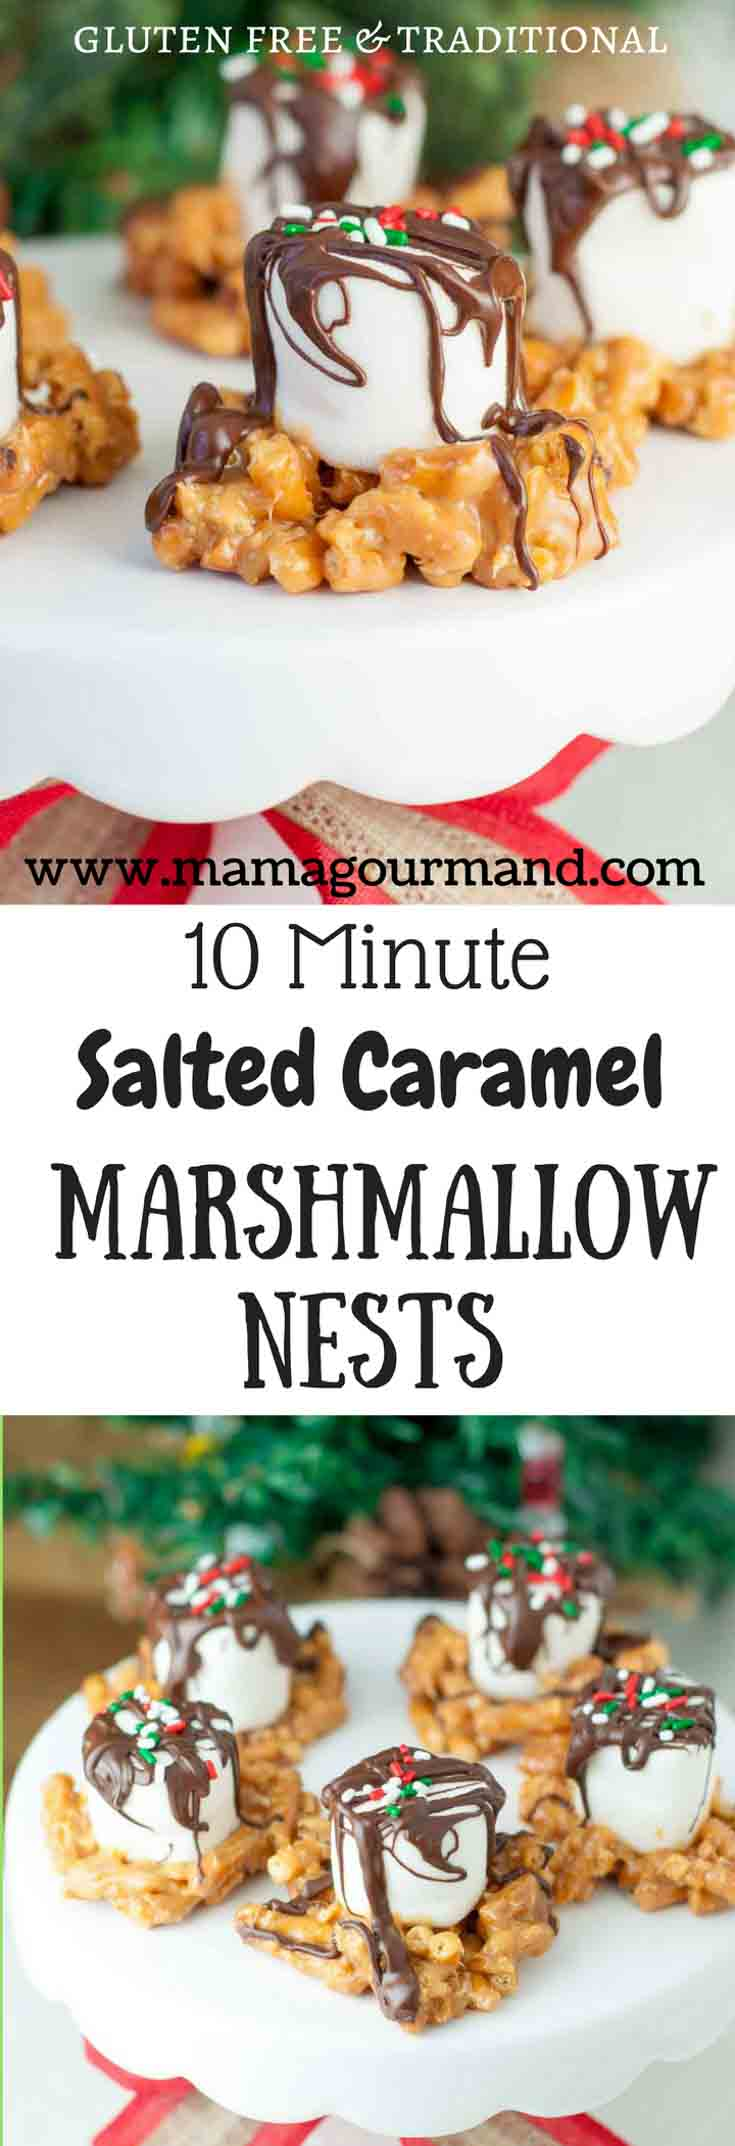 Salted Caramel Marshmallow Nests are a quick, easy holiday treat. They can be adapted for gluten free and are perfect for holiday baking with kids! #holidaybaking #saltedcaramel #glutenfreechristmas #saltysweet https://www.mamagourmand.com